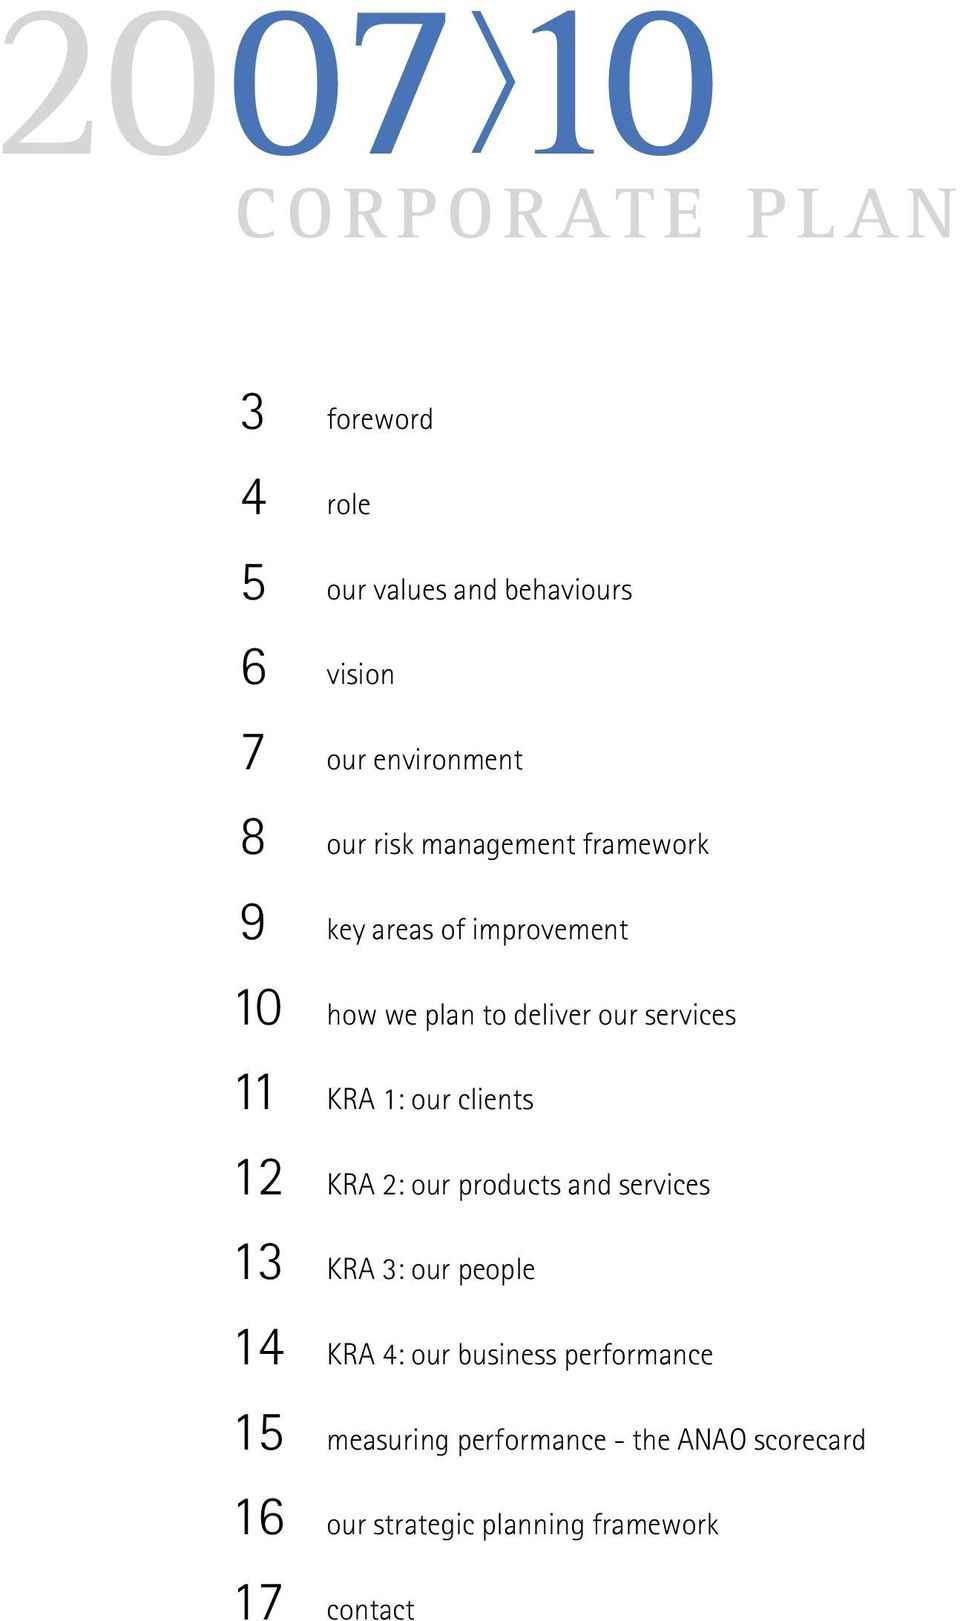 services 11 KRA 1: our clients 12 KRA 2: our products and services 13 KRA 3: our people 14 KRA 4: our